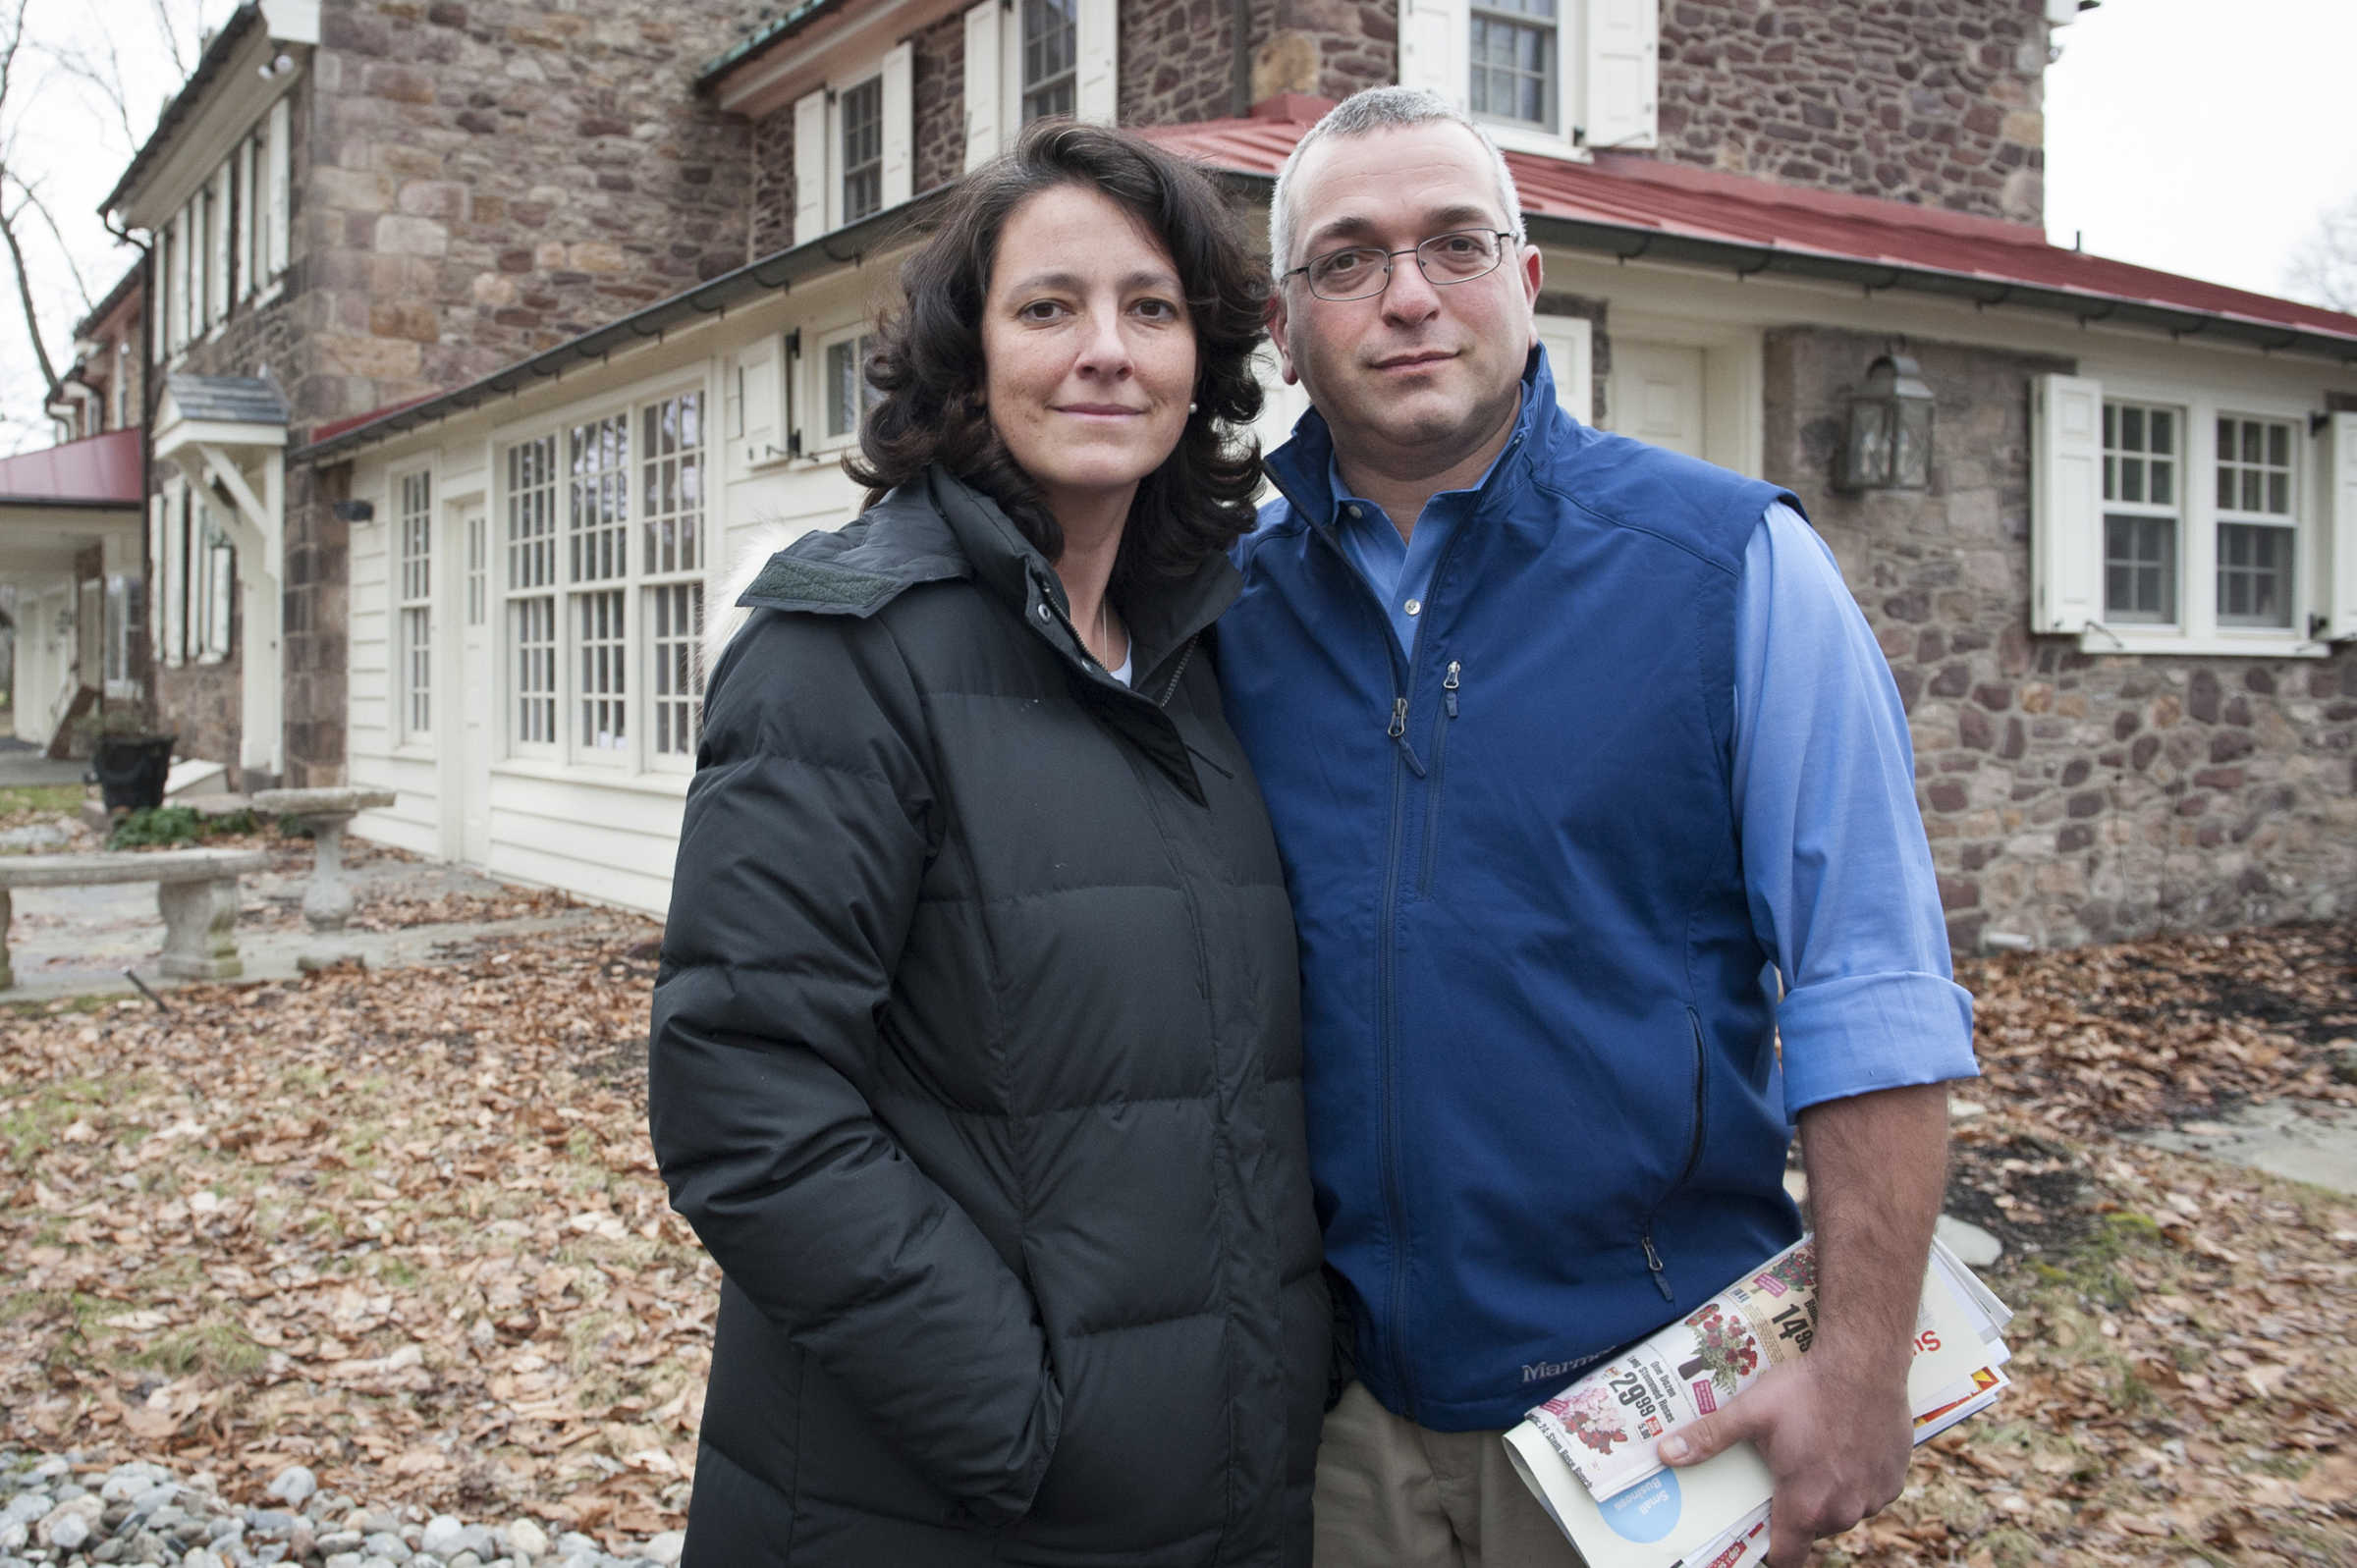 Dr. Amy Reed and her husband, Dr. Hooman Noorchash, in front of their home on Feb. 4, 2016. Her family is seeking to have her body buried in Washington Crossing National Cemetery.